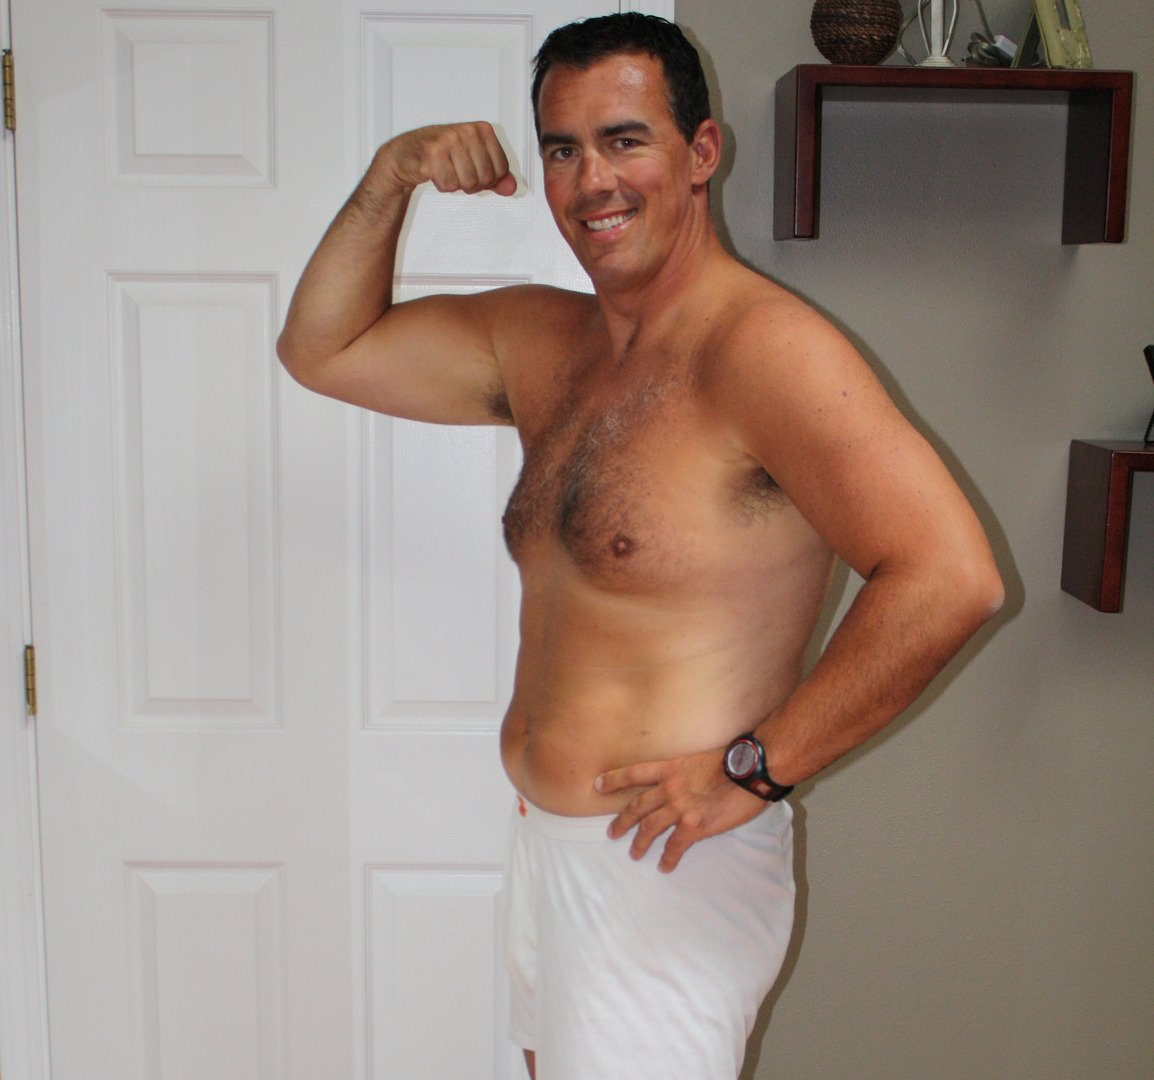 My Oregon beefy buddy from  http:// GlobalFight.com  &nbsp;   #oregon #pictures #man #men #flexing #upper #body #strength #hairy #chest #pecs #daddy <br>http://pic.twitter.com/LrgNN6pBCX